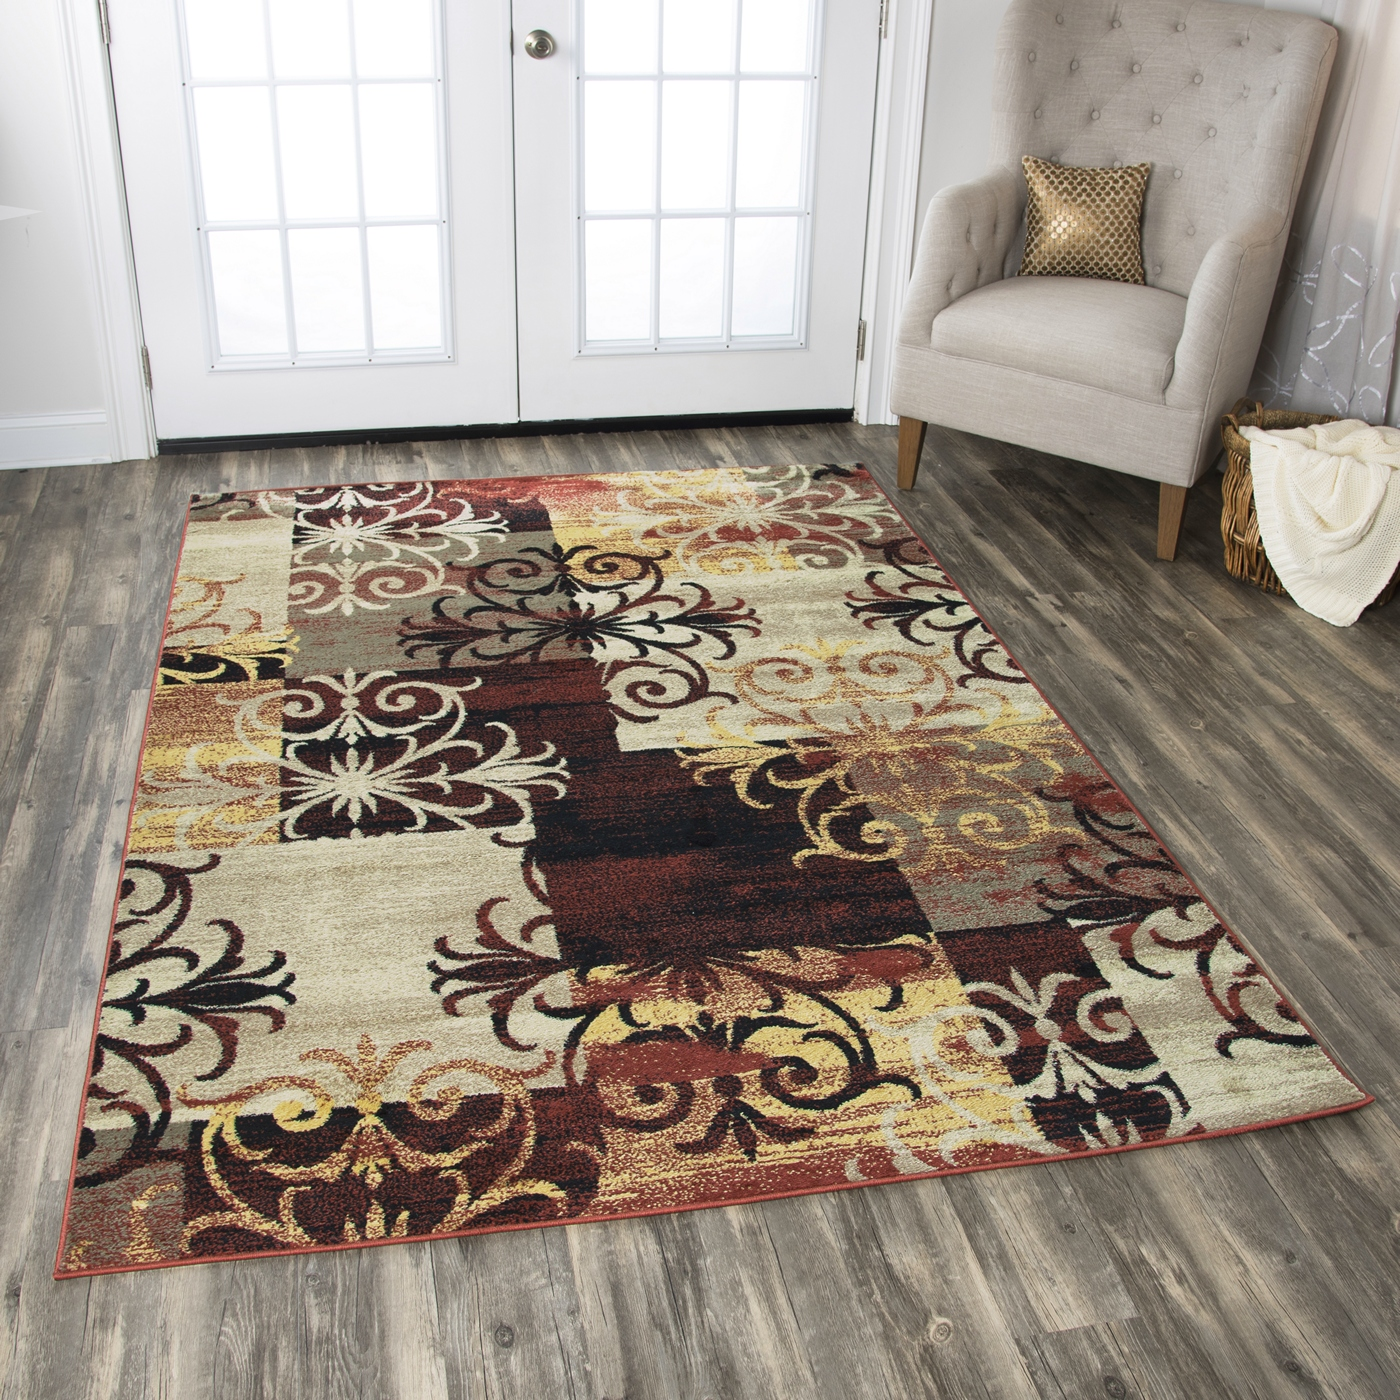 Bay Side Rustic Patchwork Area Rug In Red Black Khaki